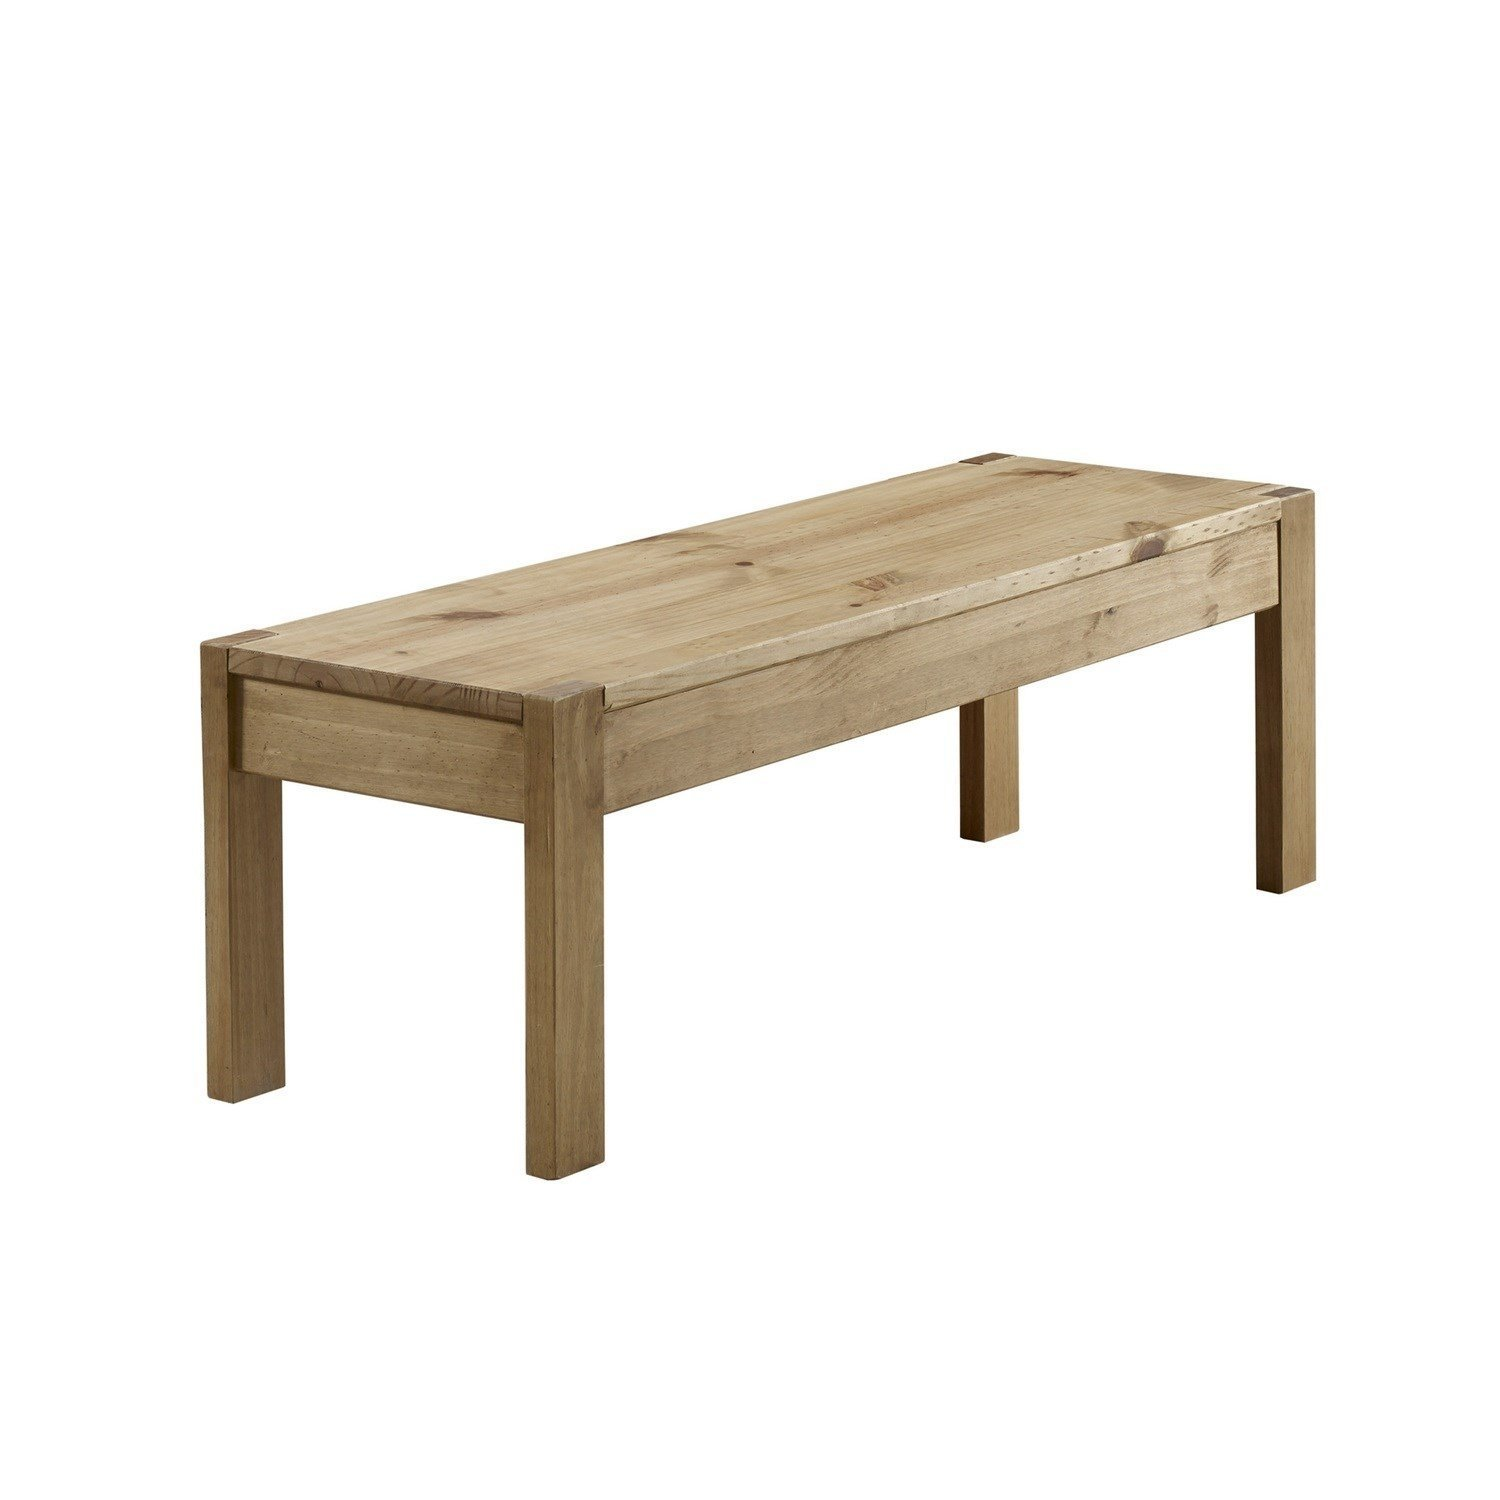 Emerson Solid Pine Rustic Dining Table Bench Amazoncouk Kitchen Home